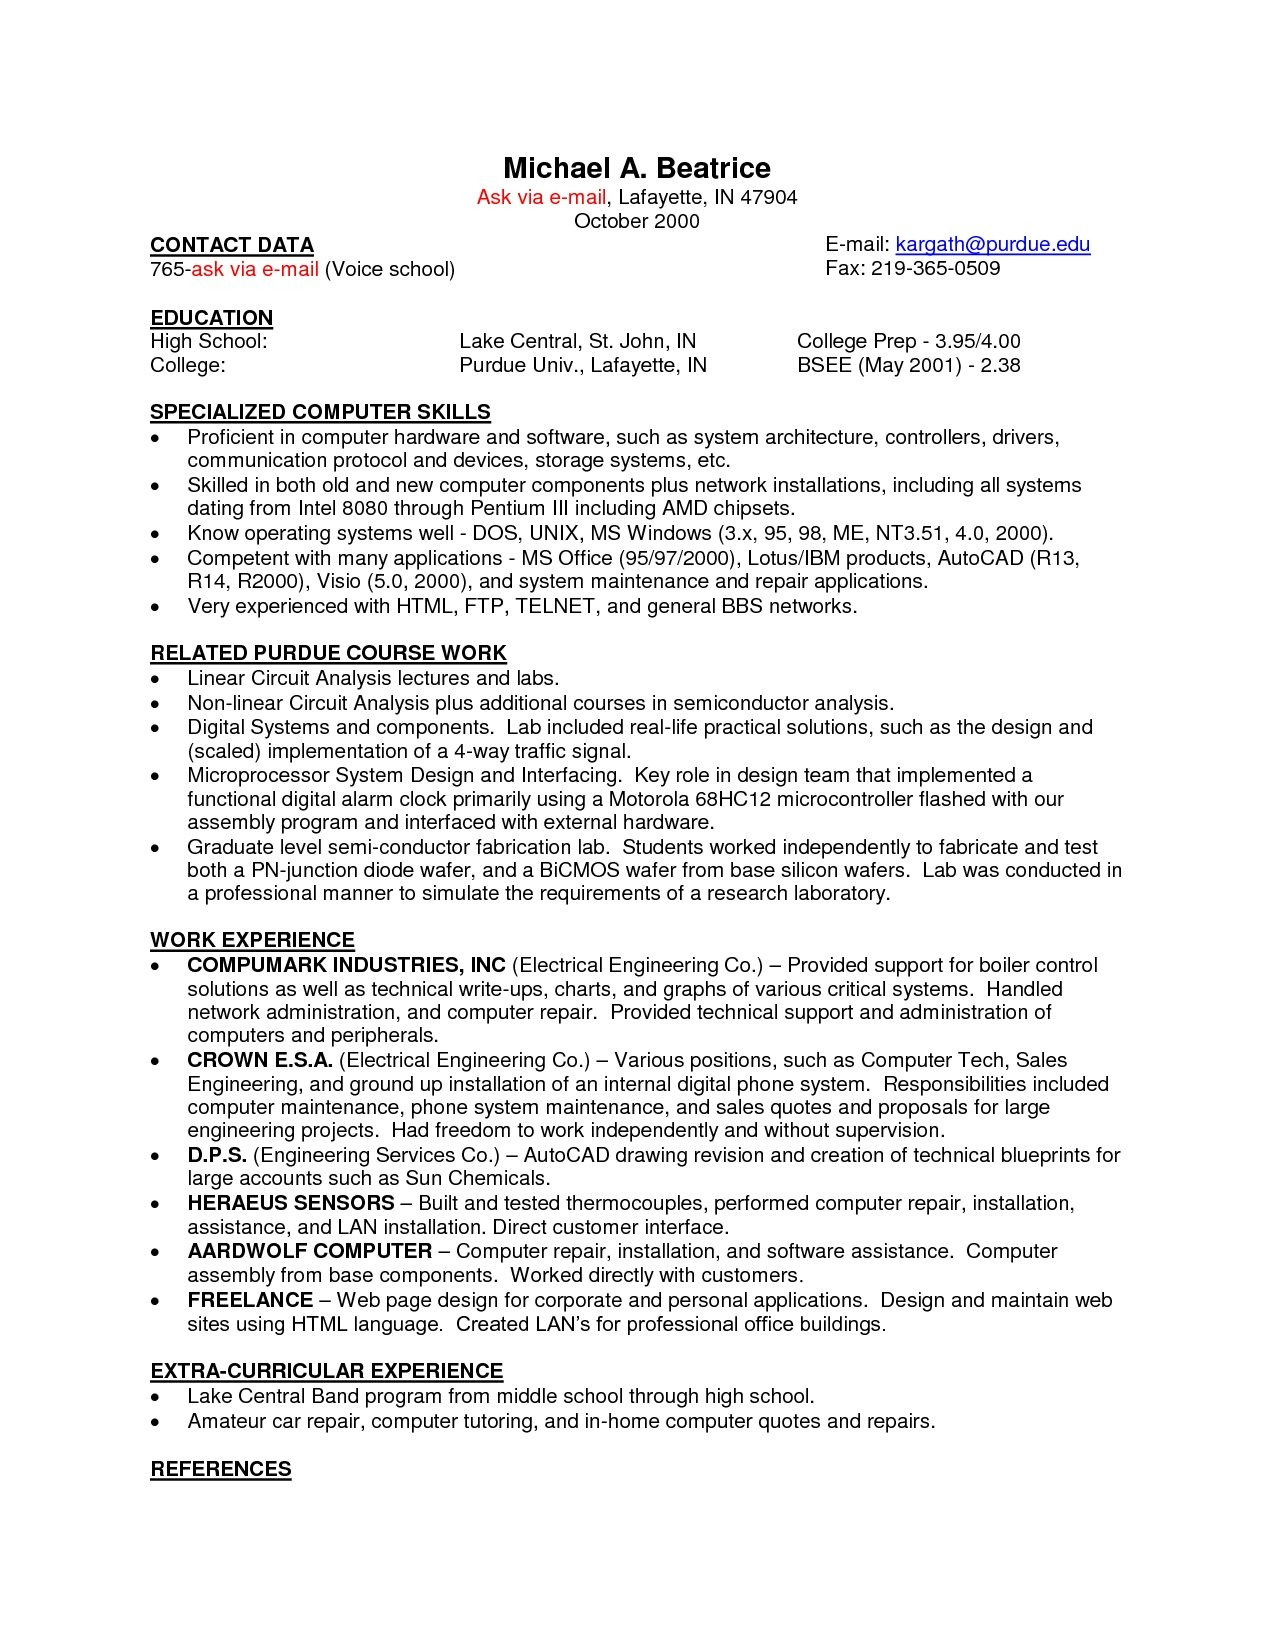 10 Trendy Ideas For Part Time Jobs part time jobs resume example best sample job resume examples for 2020